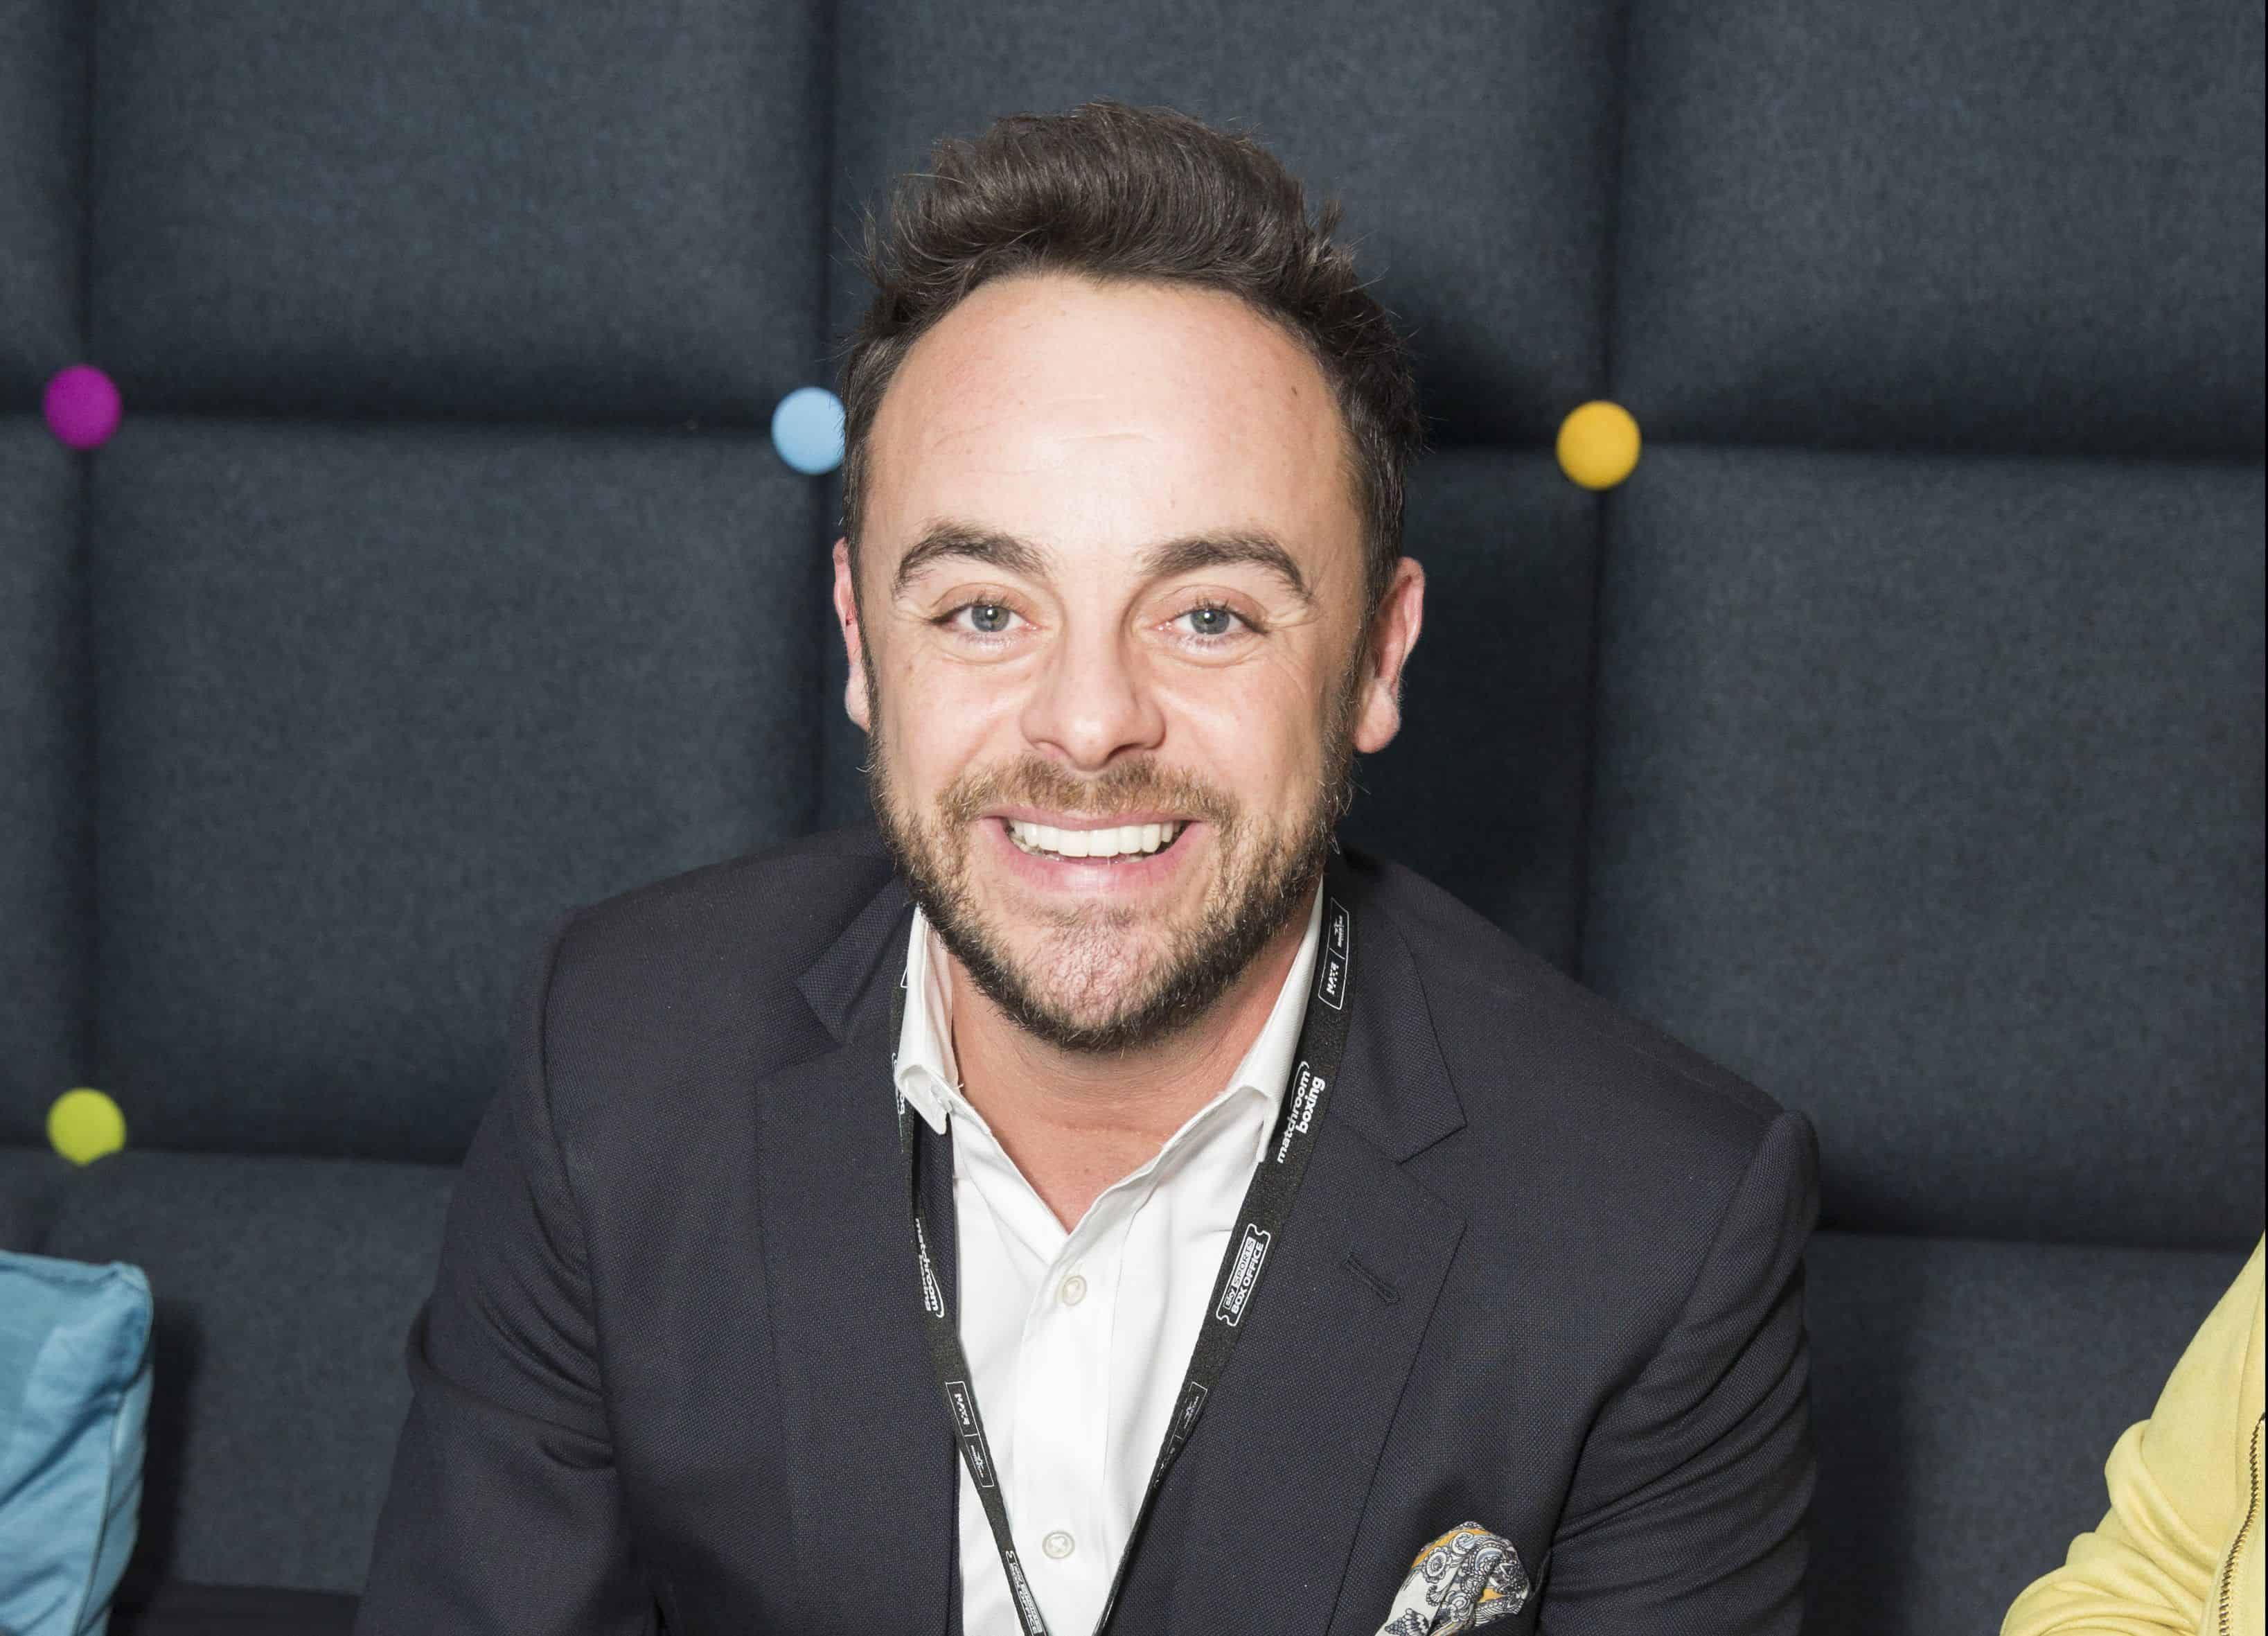 Ant McPartlin has checked into rehab for drink and drug problems